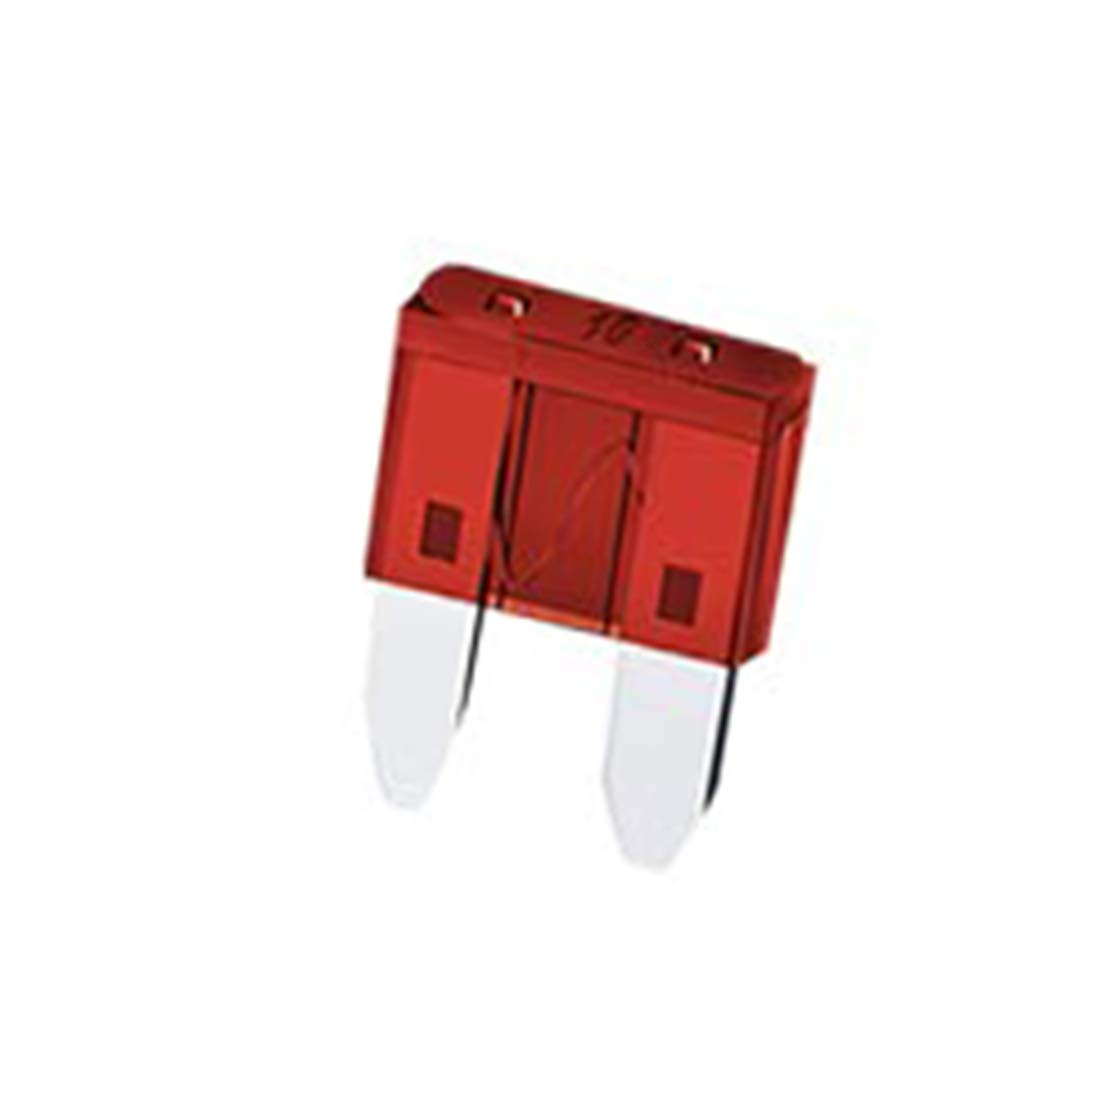 Aodesy ATM-10 10A Fast Acting ATM Mini Blade Fuse for Automotive Car SUV Truck Red Pack of 50 Shenzhenshiaodesiwujinjidianyouxiangongsi